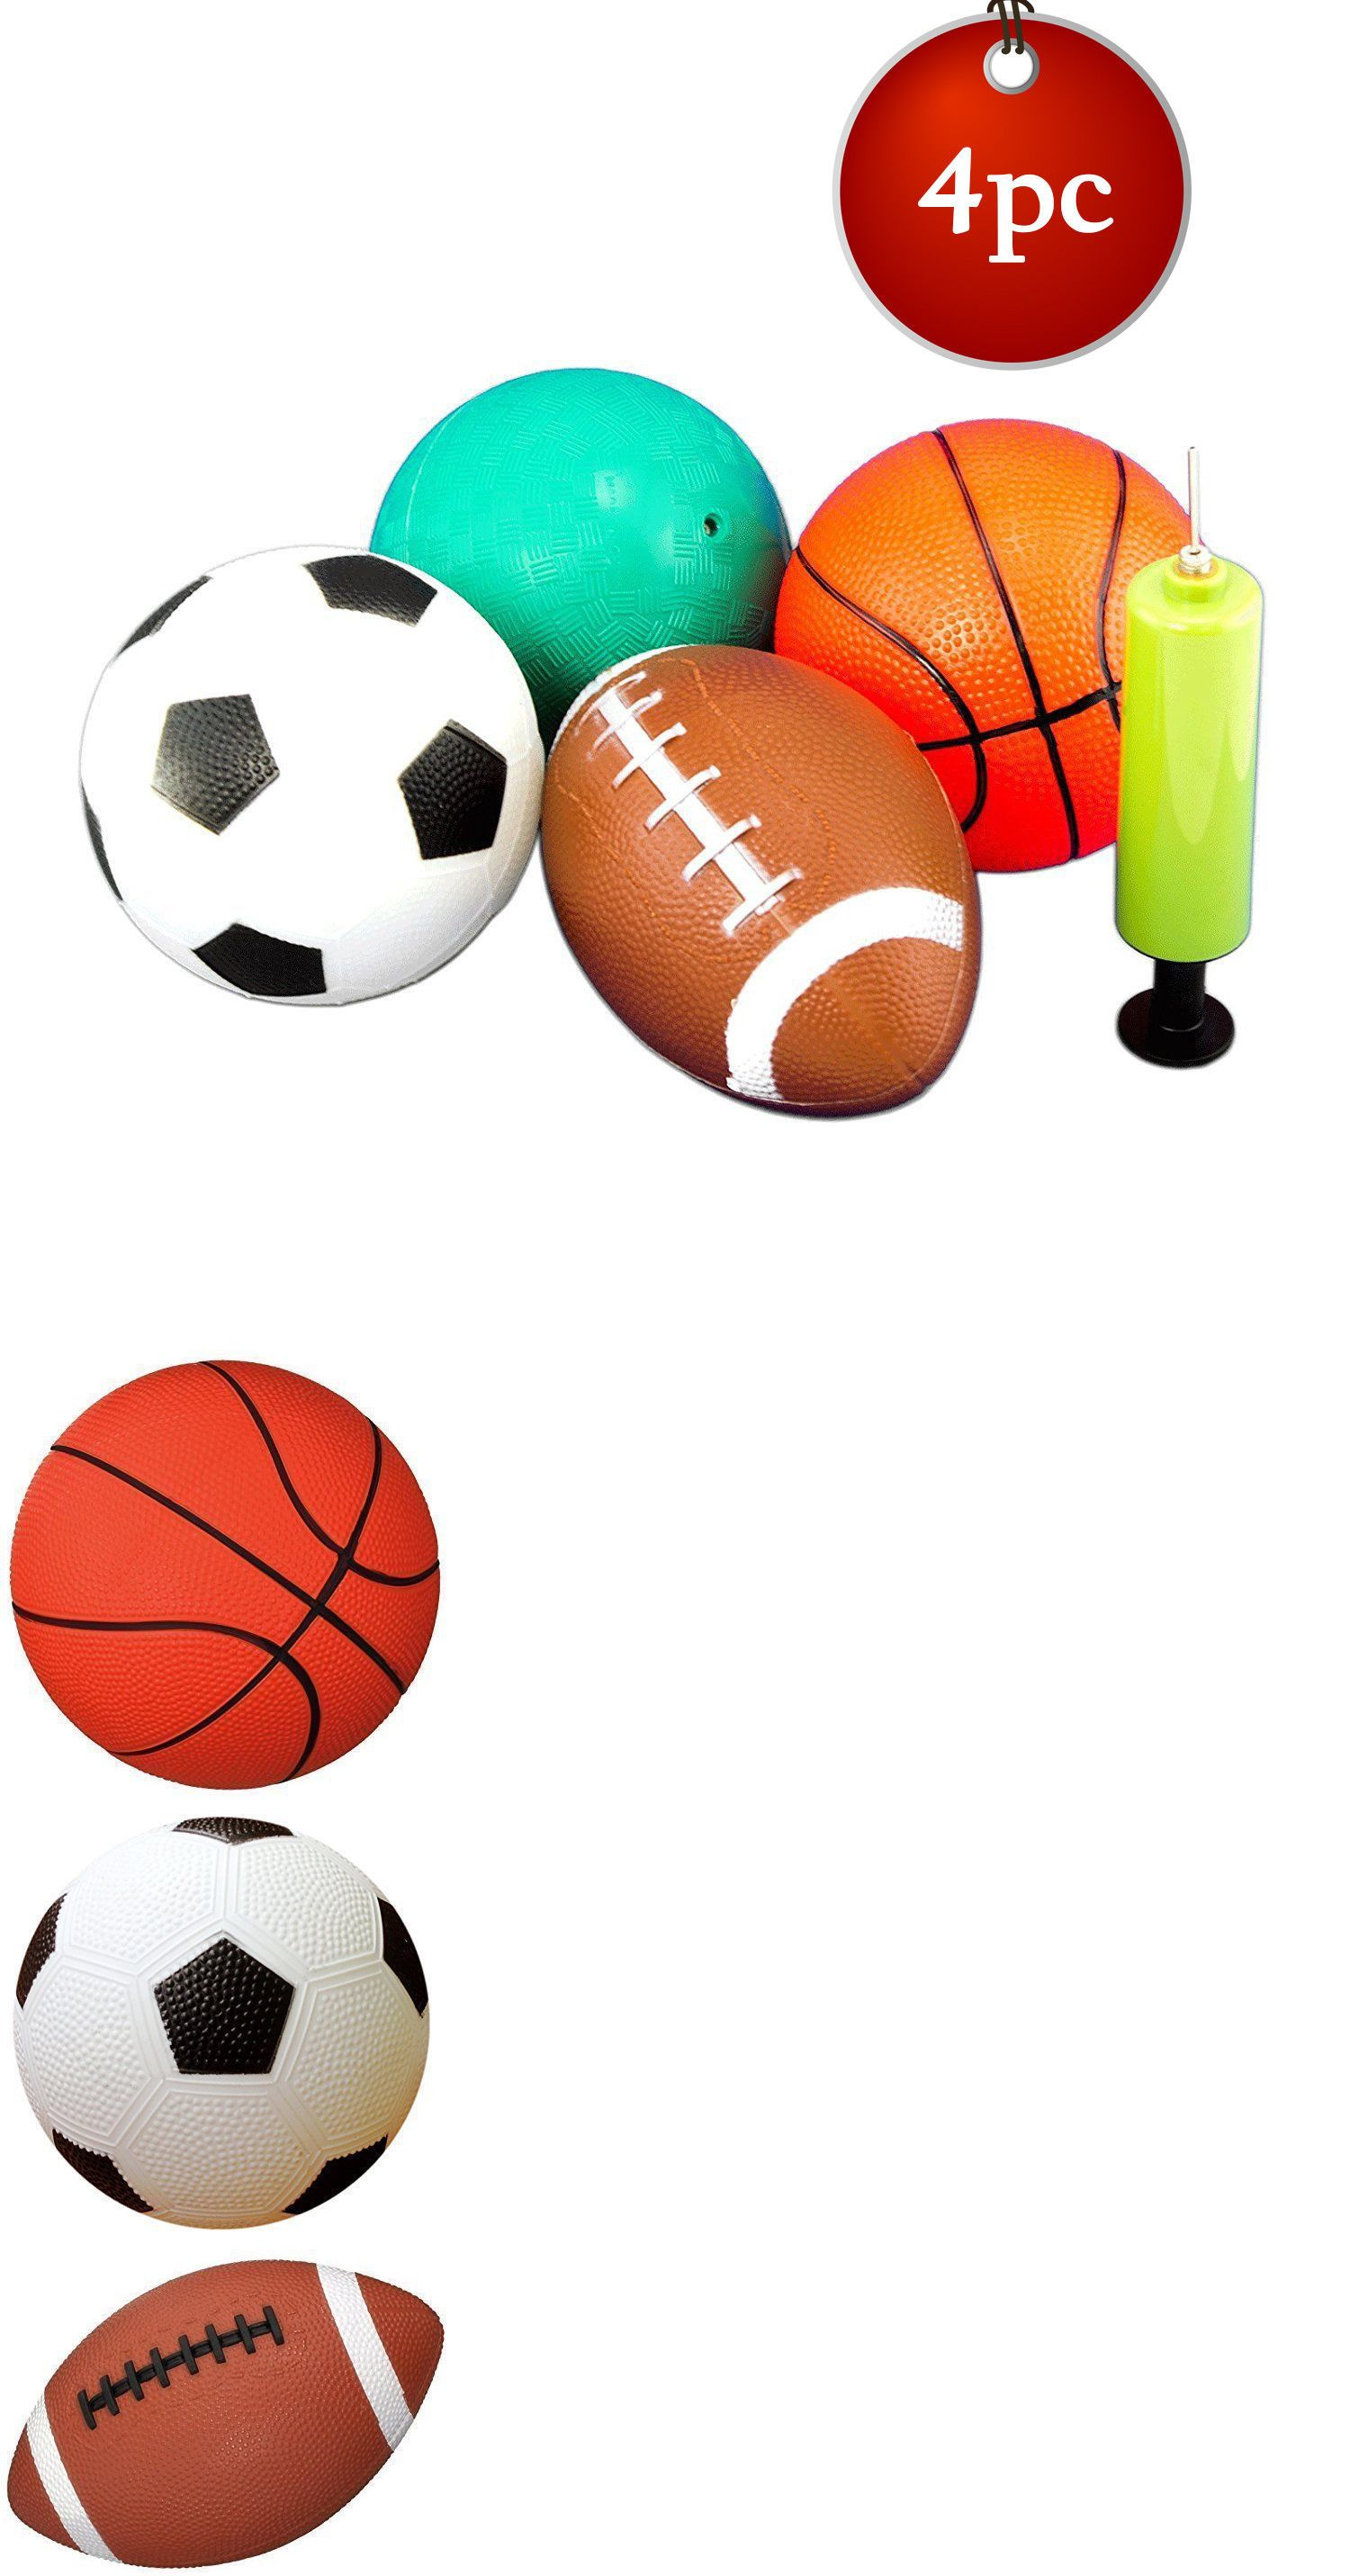 5 4pc Kids Sports Balls W Pump Dodgeball Soccer Football Basketball Toy Party Ebay Football And Basketball Kids Sports Sports Balls